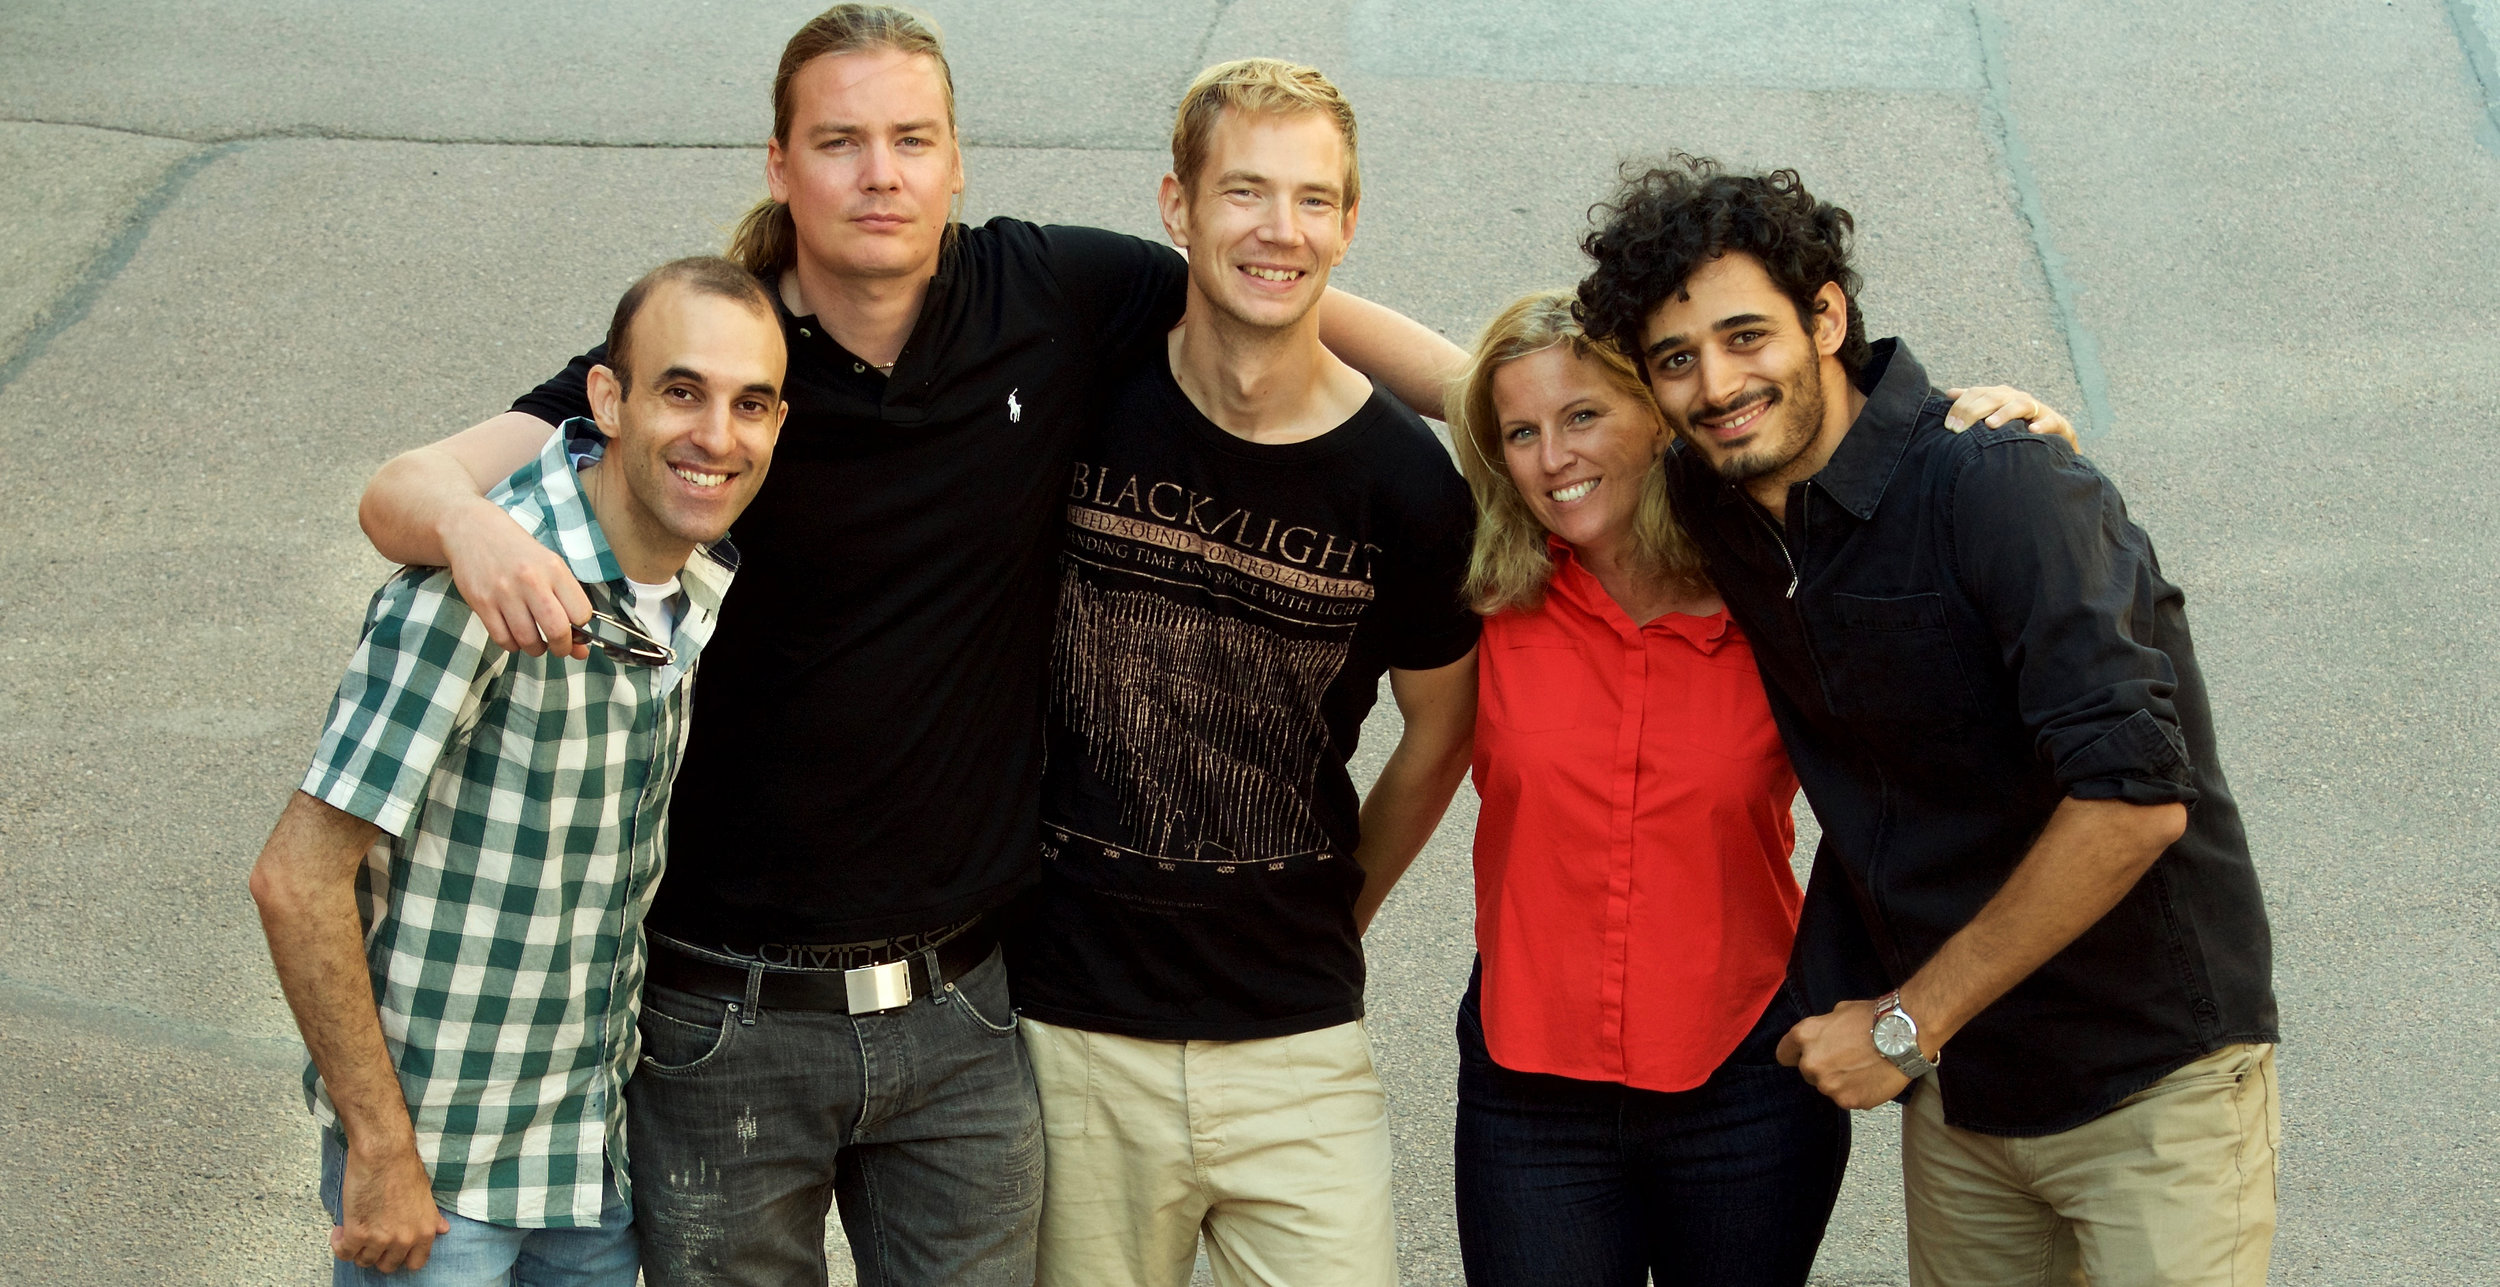 The founding team from left to right: Amir Sabbagh Pour,  Simon Ulfsbäcker, Rasmus Johansson, Johanna Reimers and Farshid Jafari Harandi .